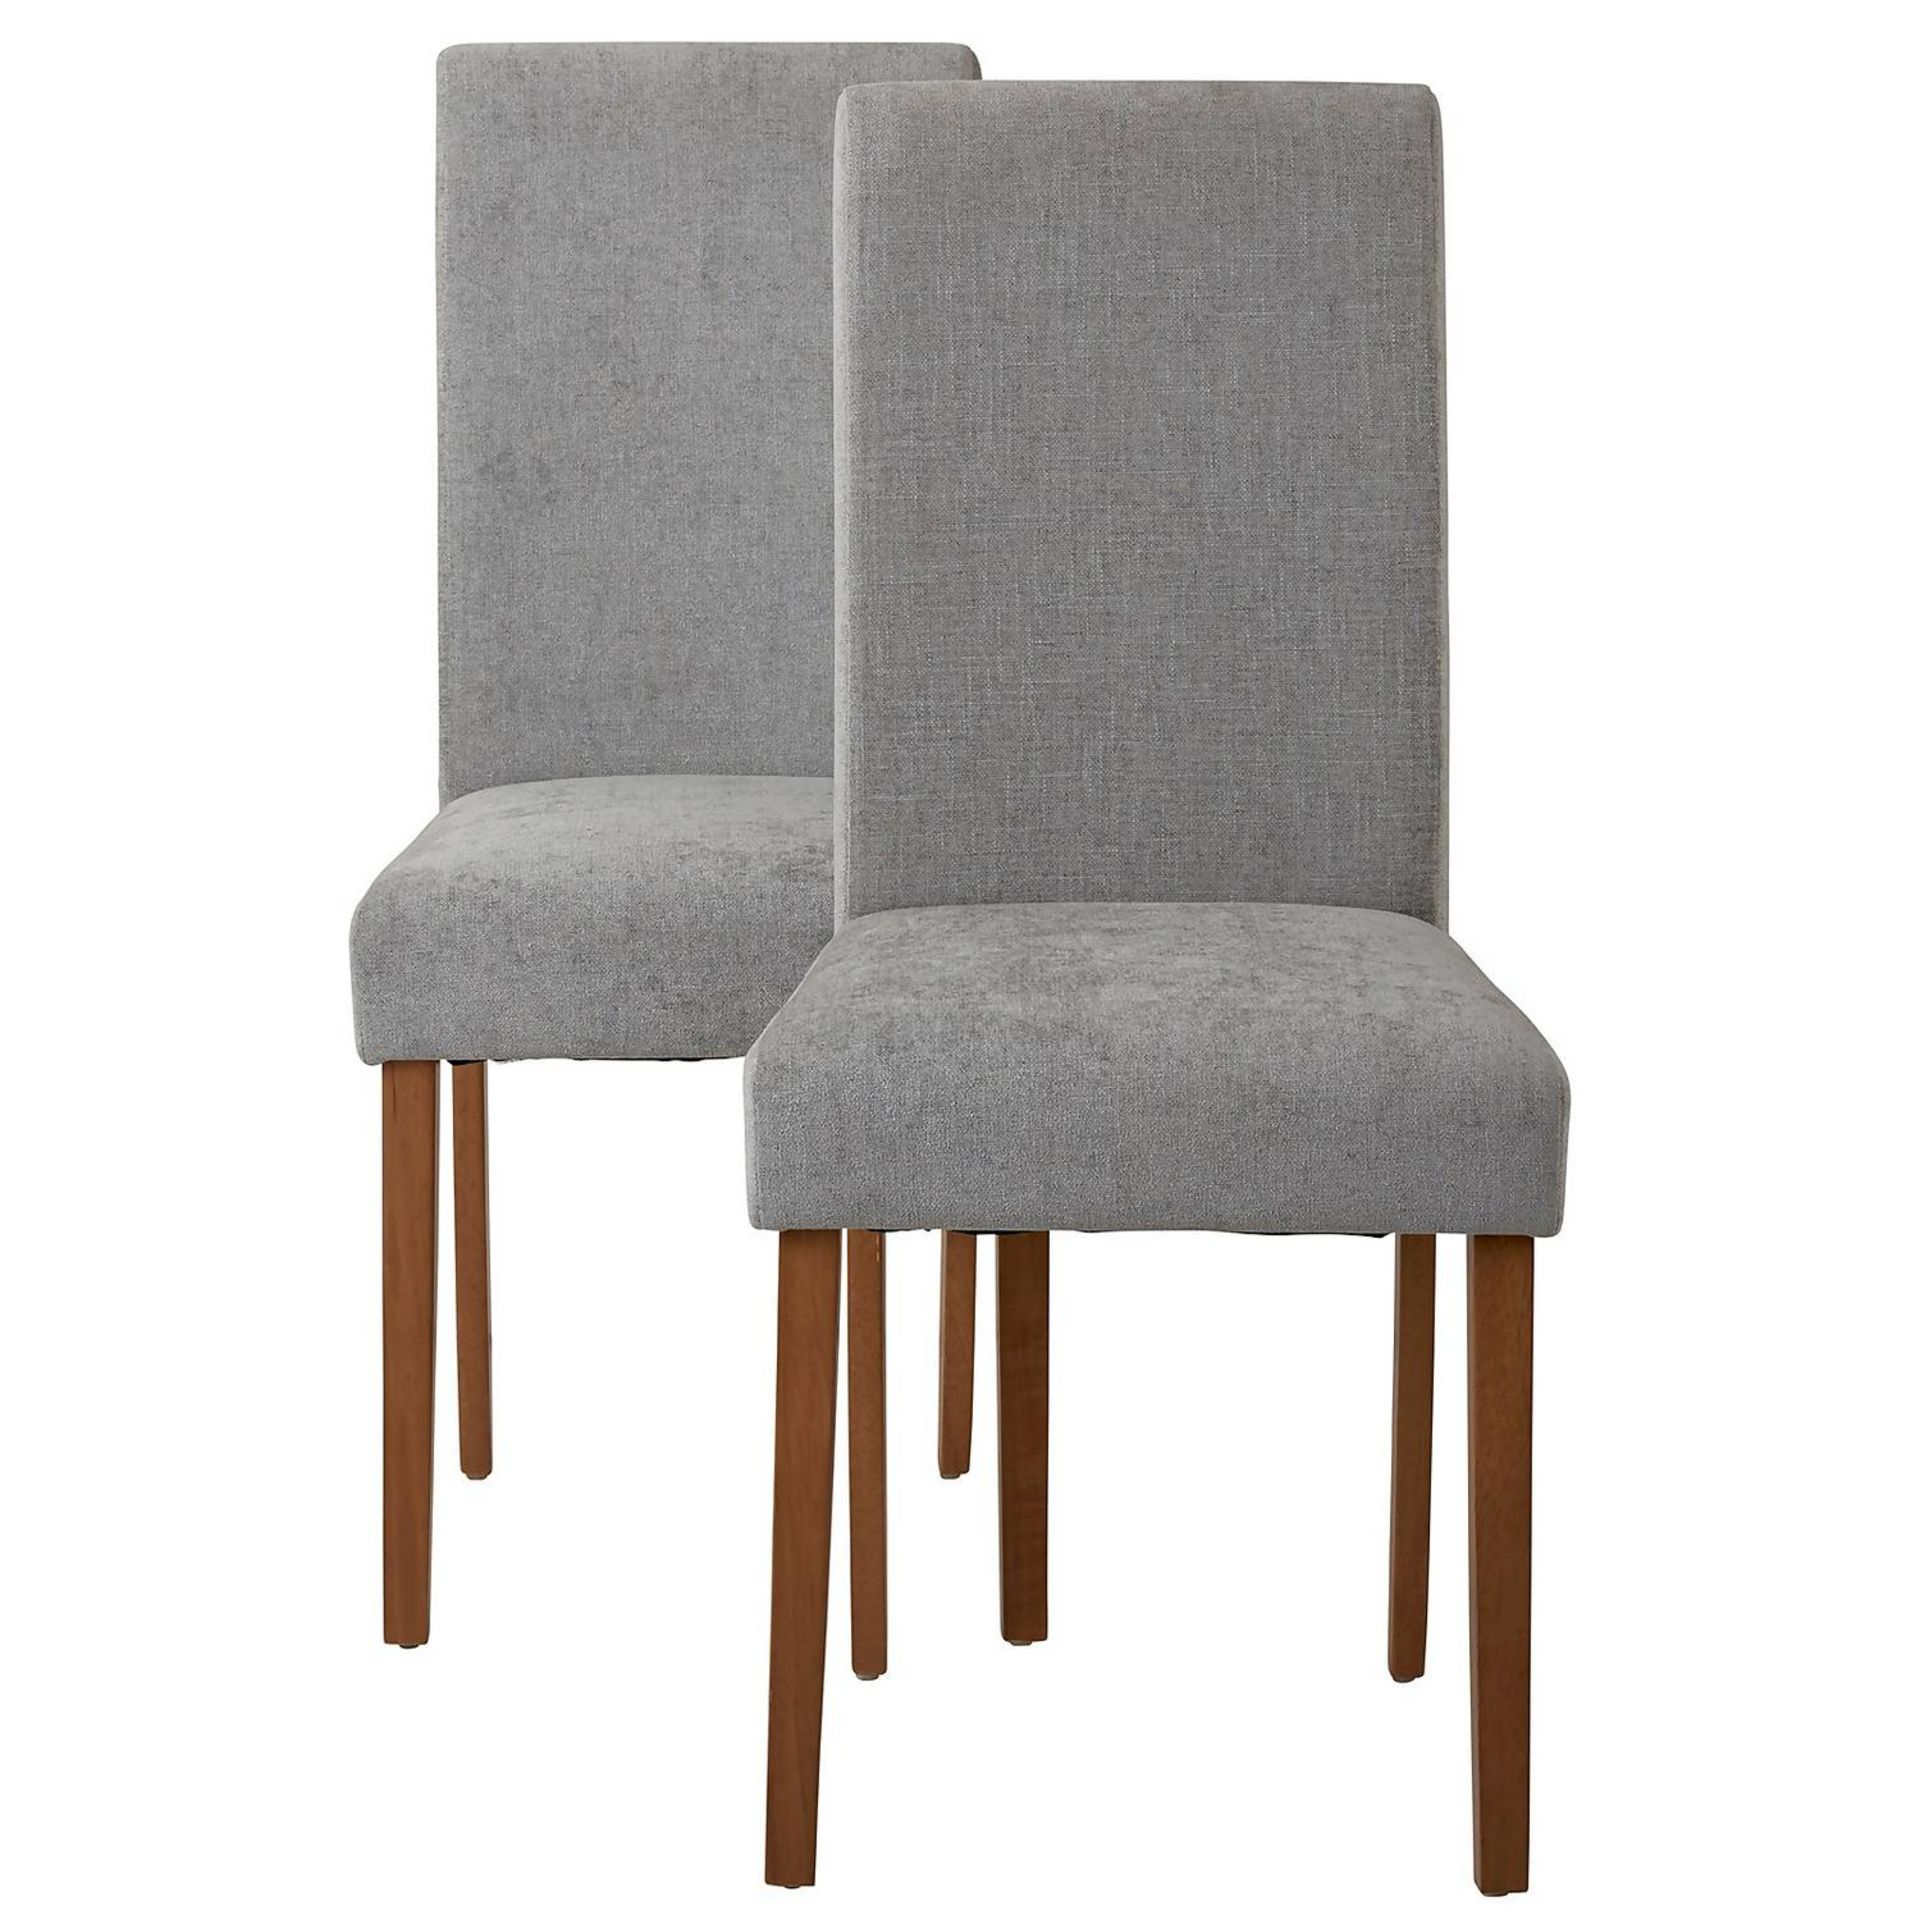 (4P) 1x Diva Dining Chairs. Grey Upholstered Seats. Solid Rubberwood Legs. Unit Complete With Fixing